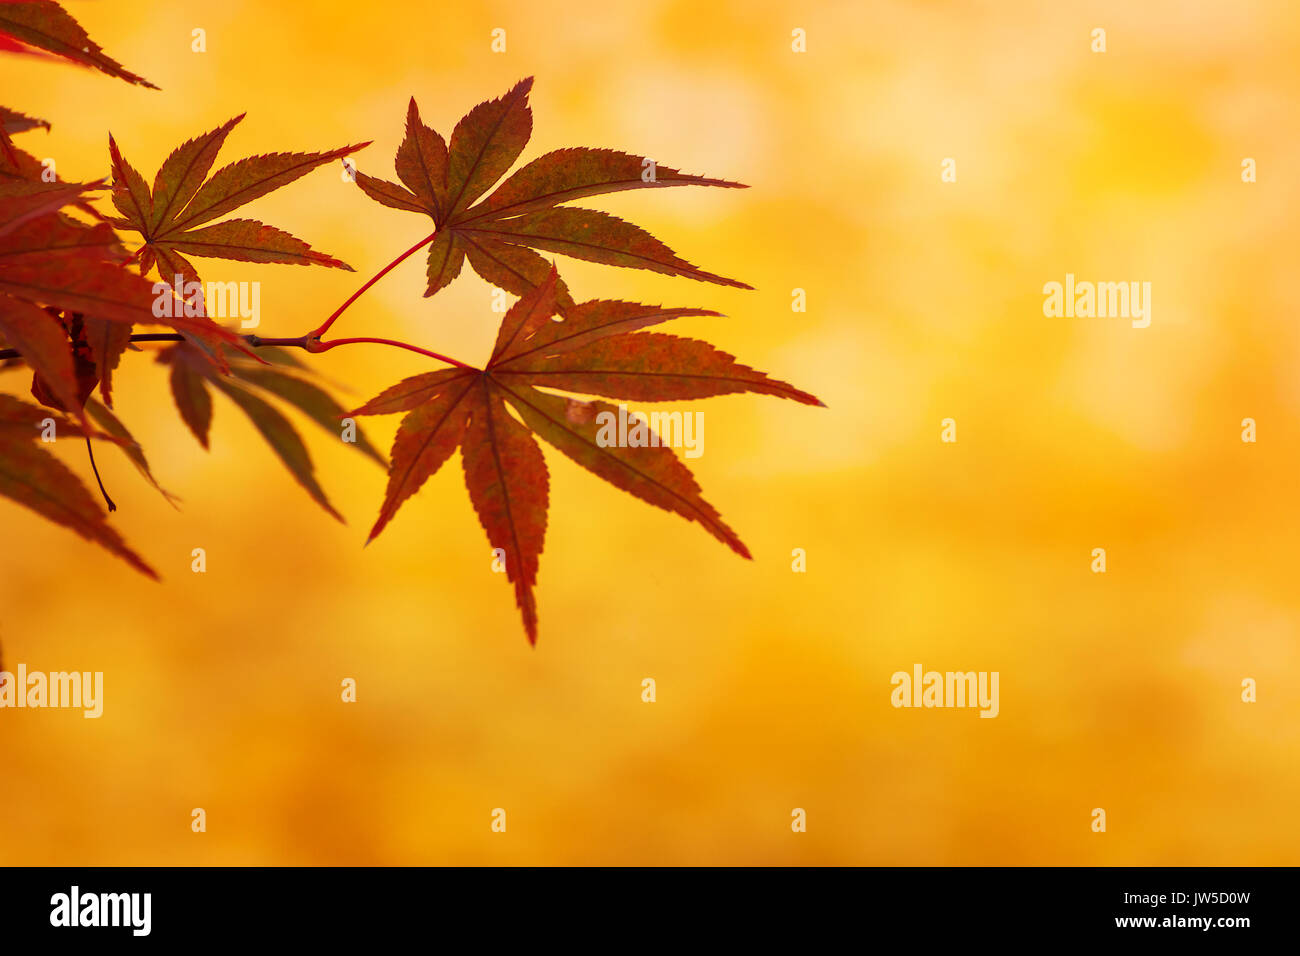 Colorful Maple Leaves in Autumn - Stock Image